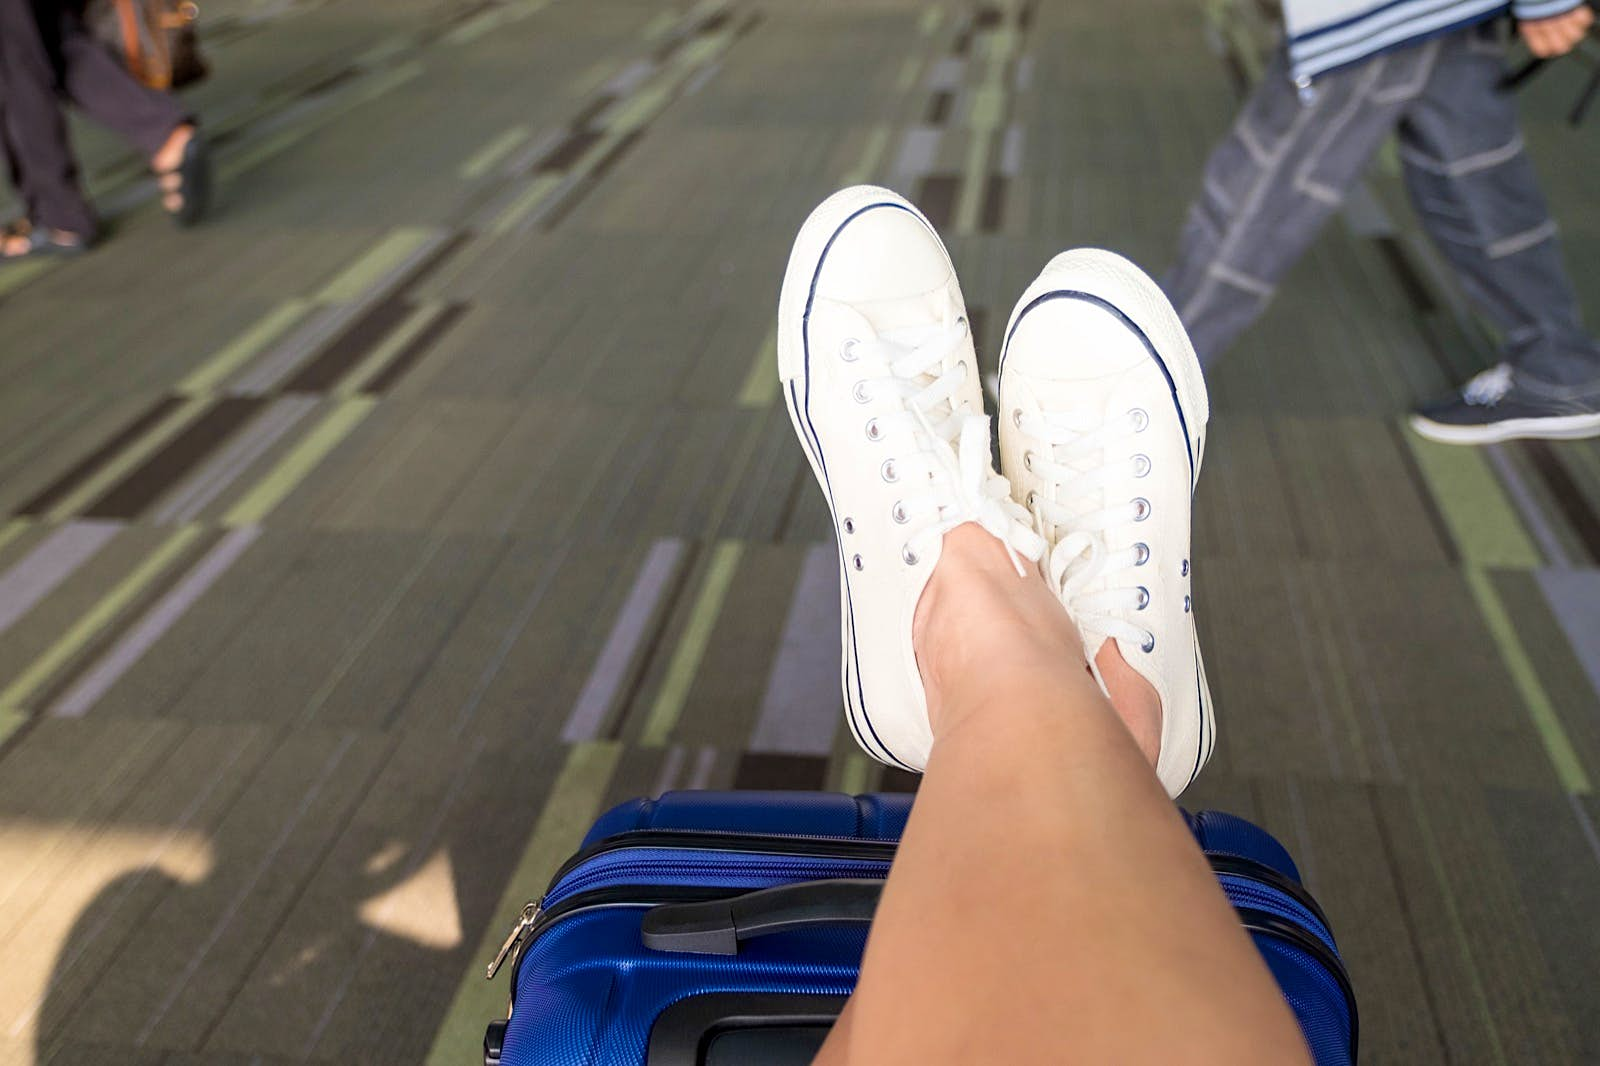 Close up of a person crossing their legs wearing white sneakers propped up on suitcase at an airport terminal; tips for a long-haul flight